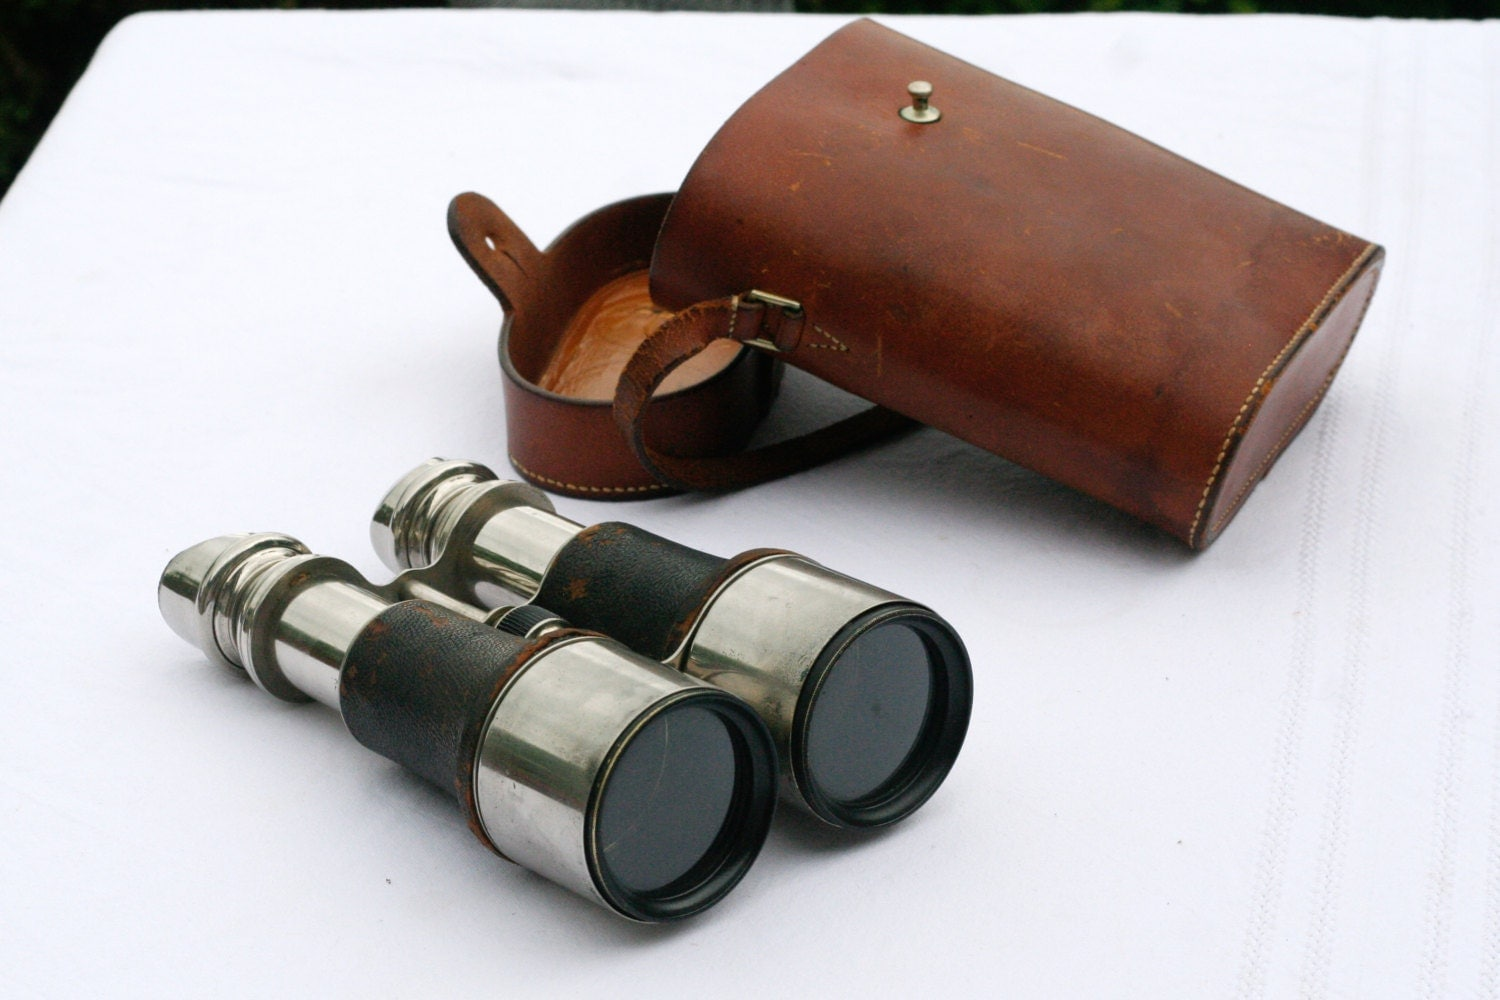 rare french vintage military binoculars with leather case